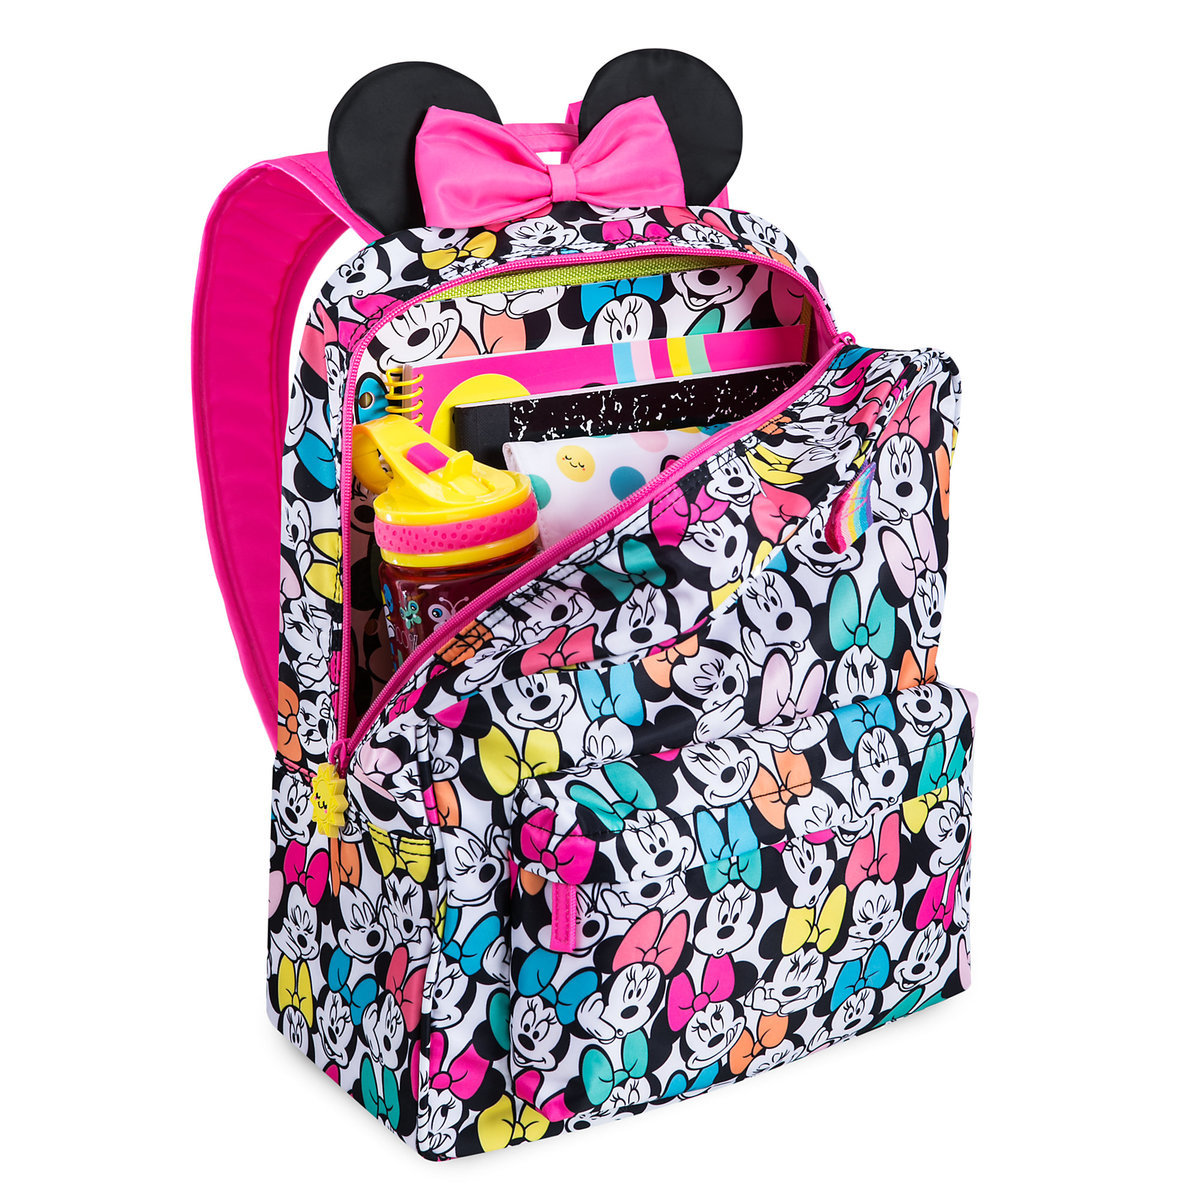 388e1ff7f2a Product Image of Minnie Mouse Rainbow Backpack - Personalizable   5